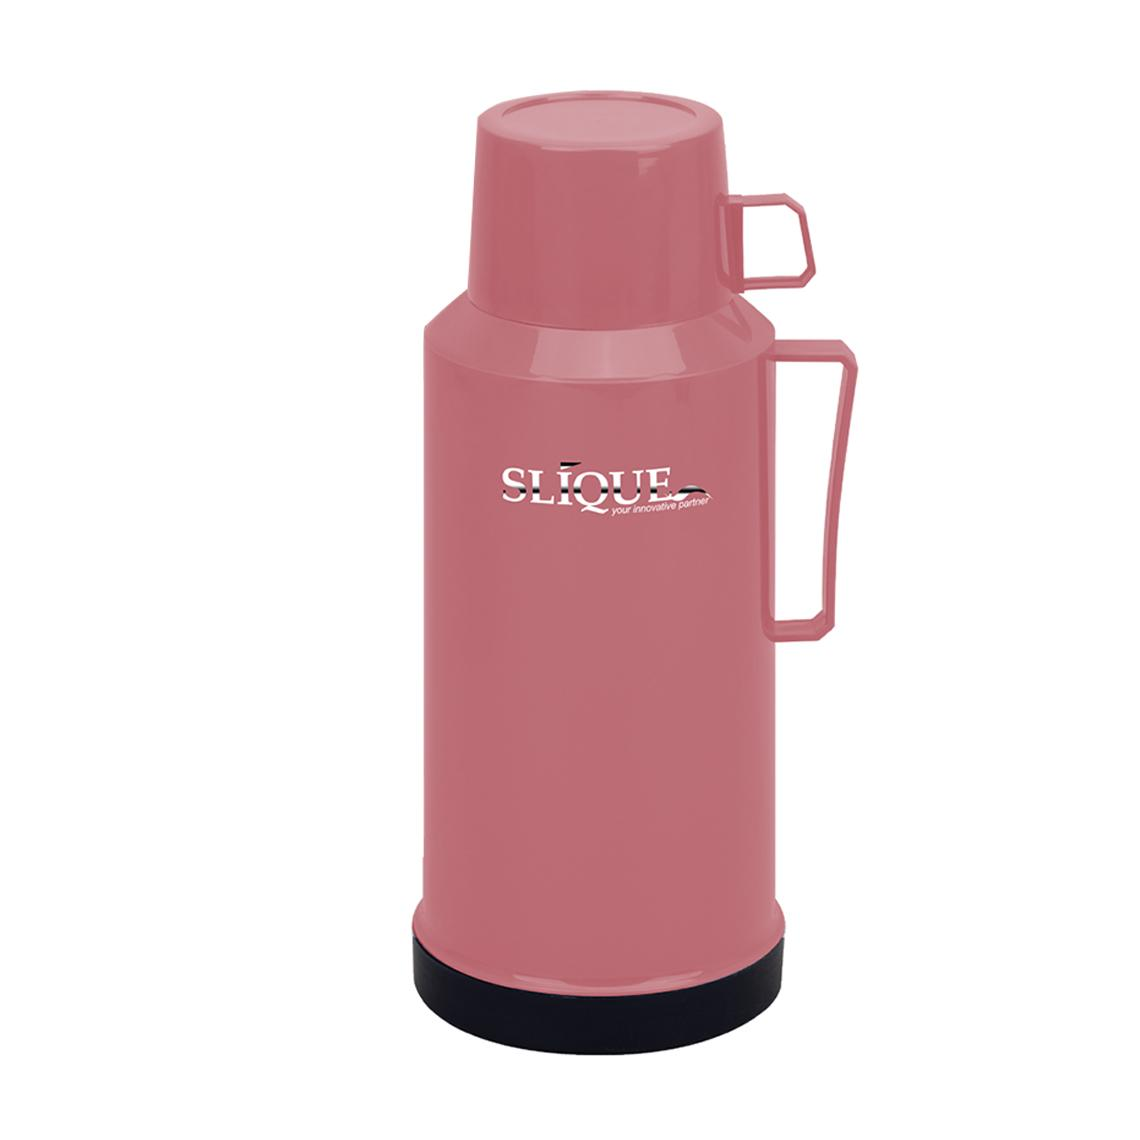 Vacuum Flask 1.0l By Sunbeams Impex Inc..